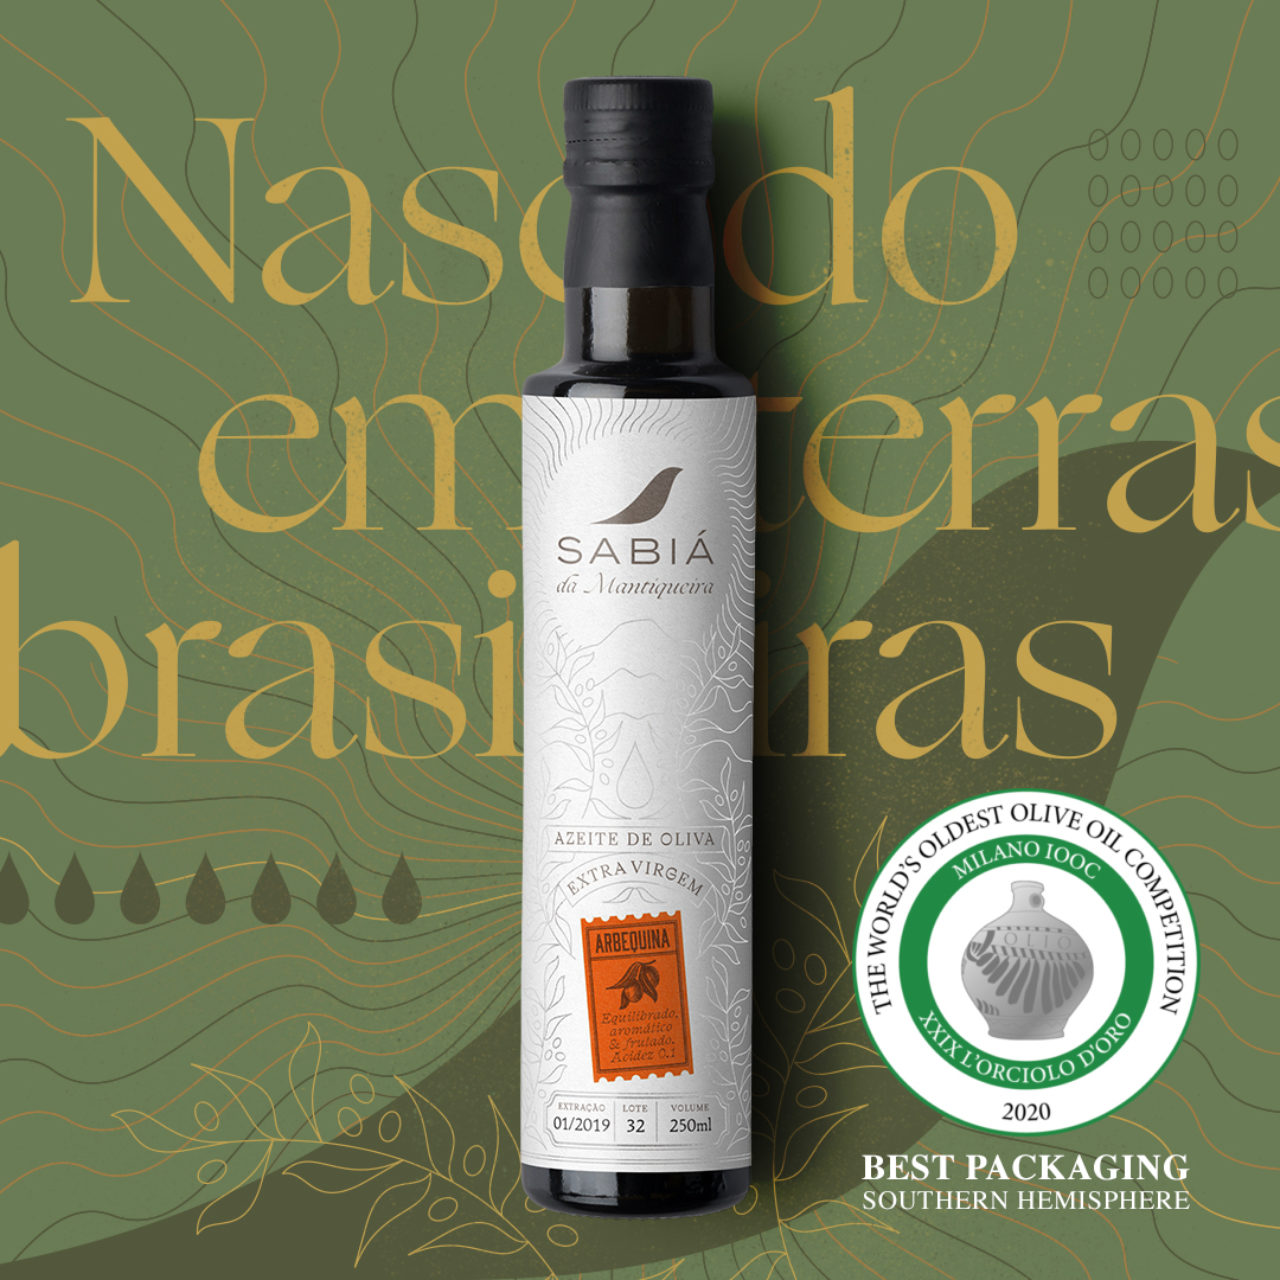 FutureBrand São Paulo wins Best Packaging in the Southern Hemisphere award